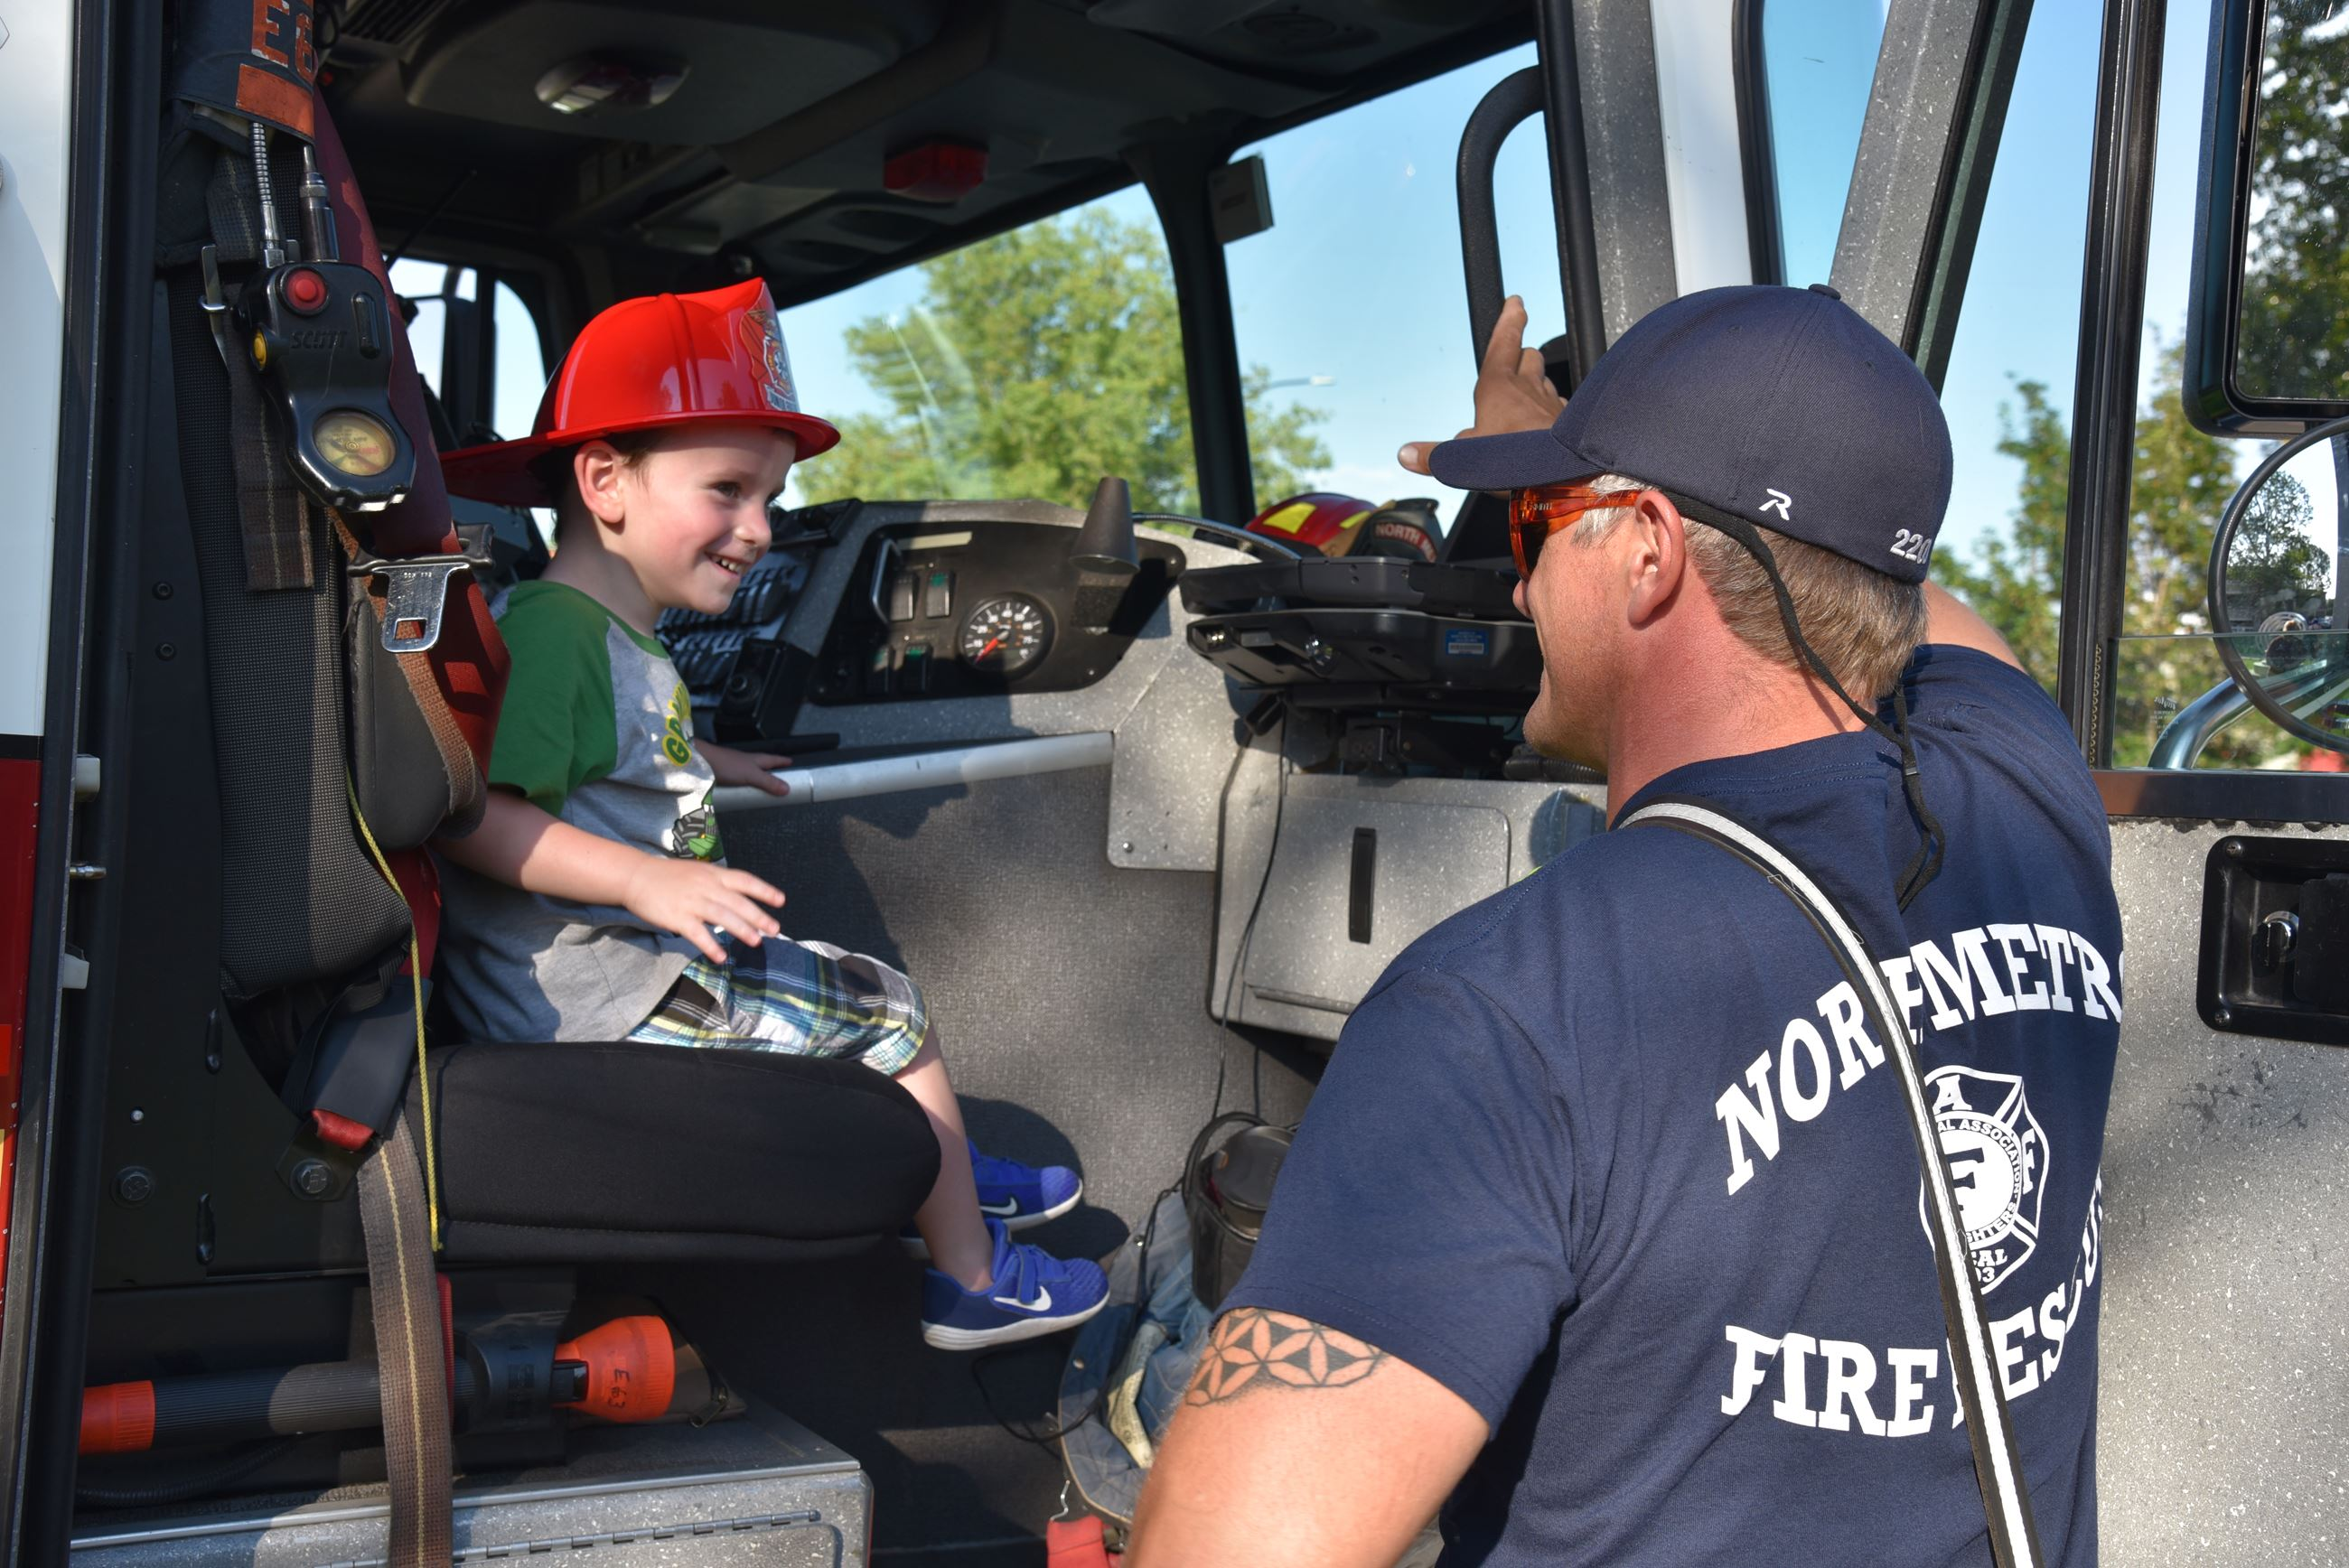 Firefighter giving engine tour to child